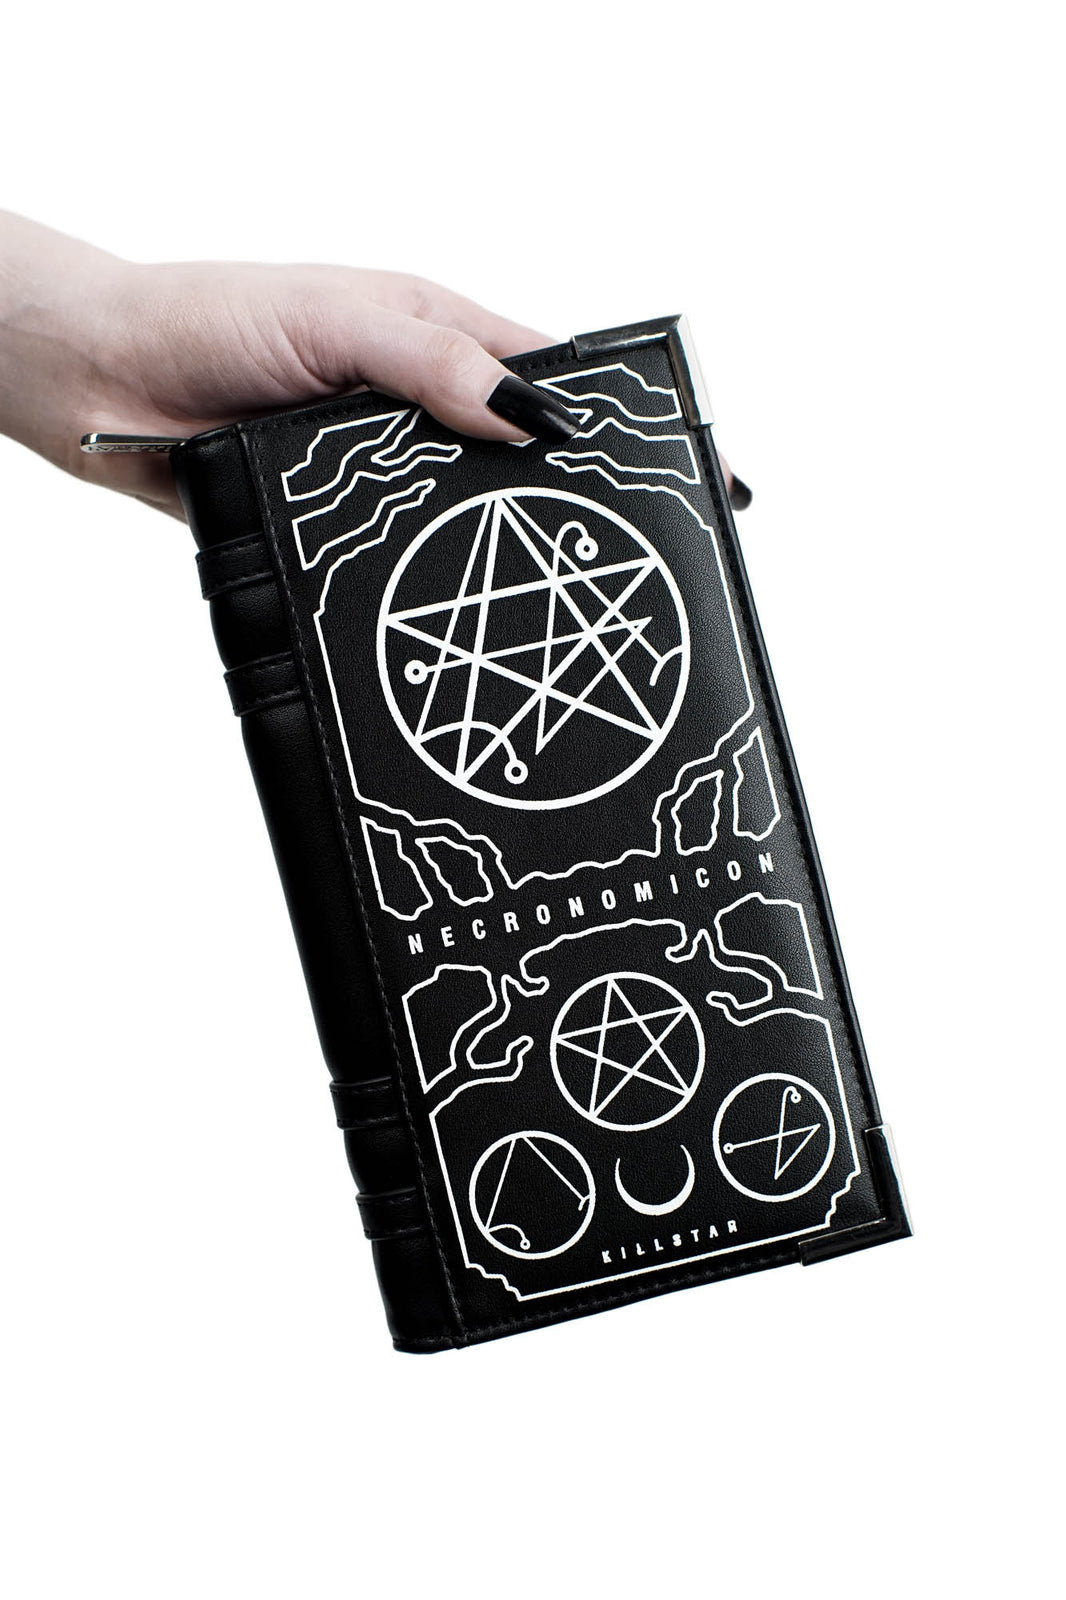 Necronomicon Book Wallet [B]